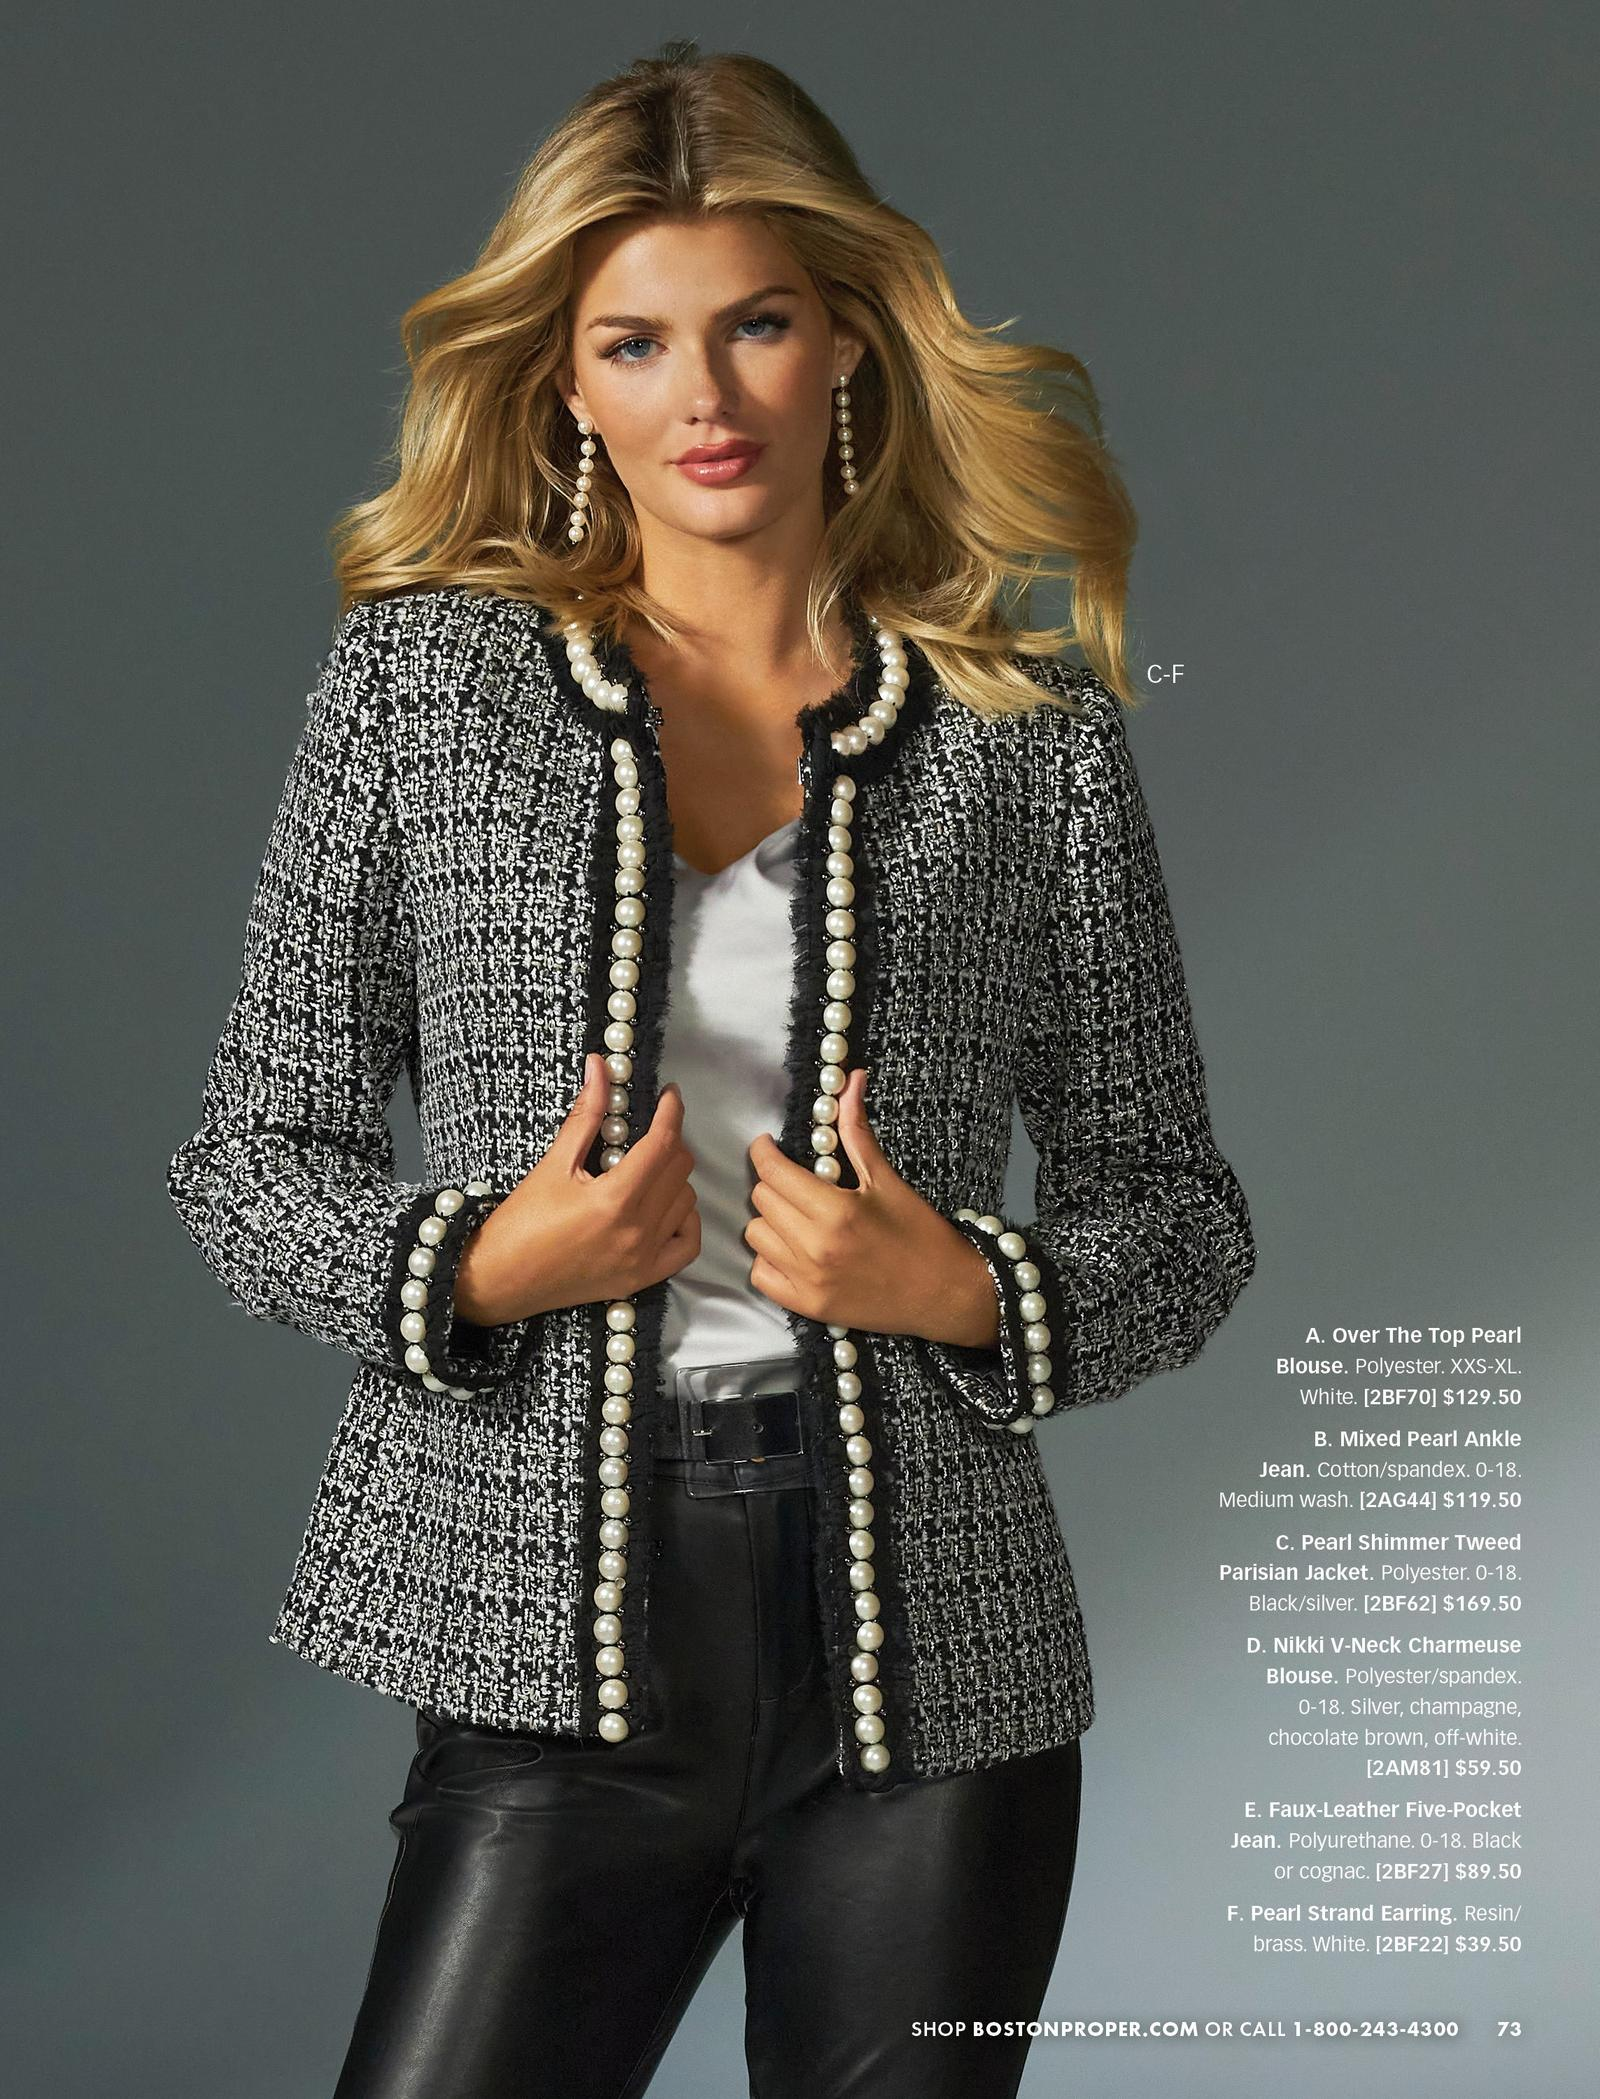 model wearing a black and silver pearl shimmer tweed jacket, silver v-neck top, black belt, black faux-leather jeans, and pearl strand earrings.